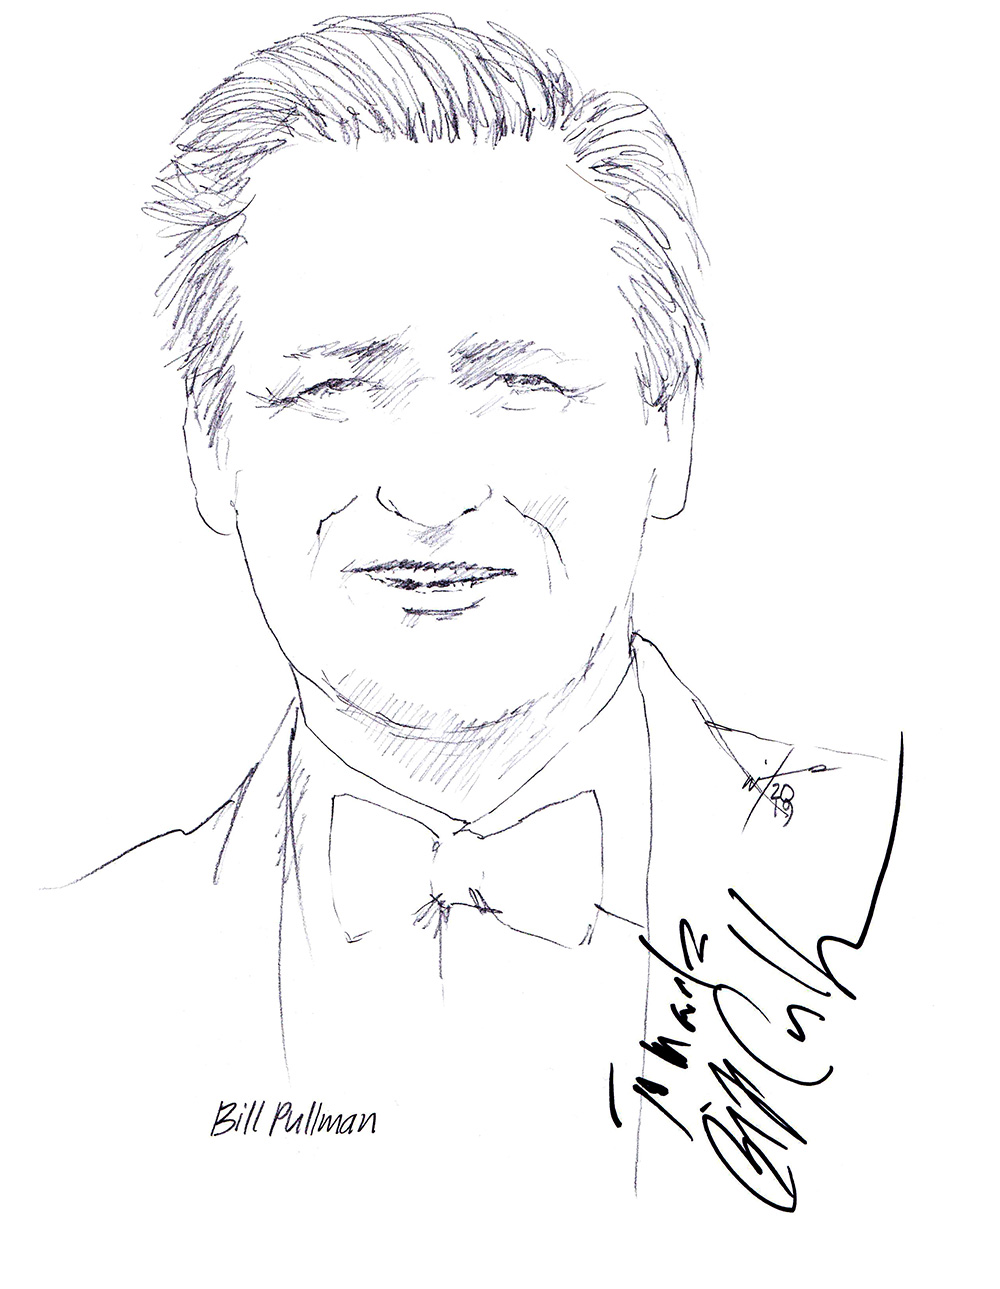 Autographed drawing of actor Bill Pullman